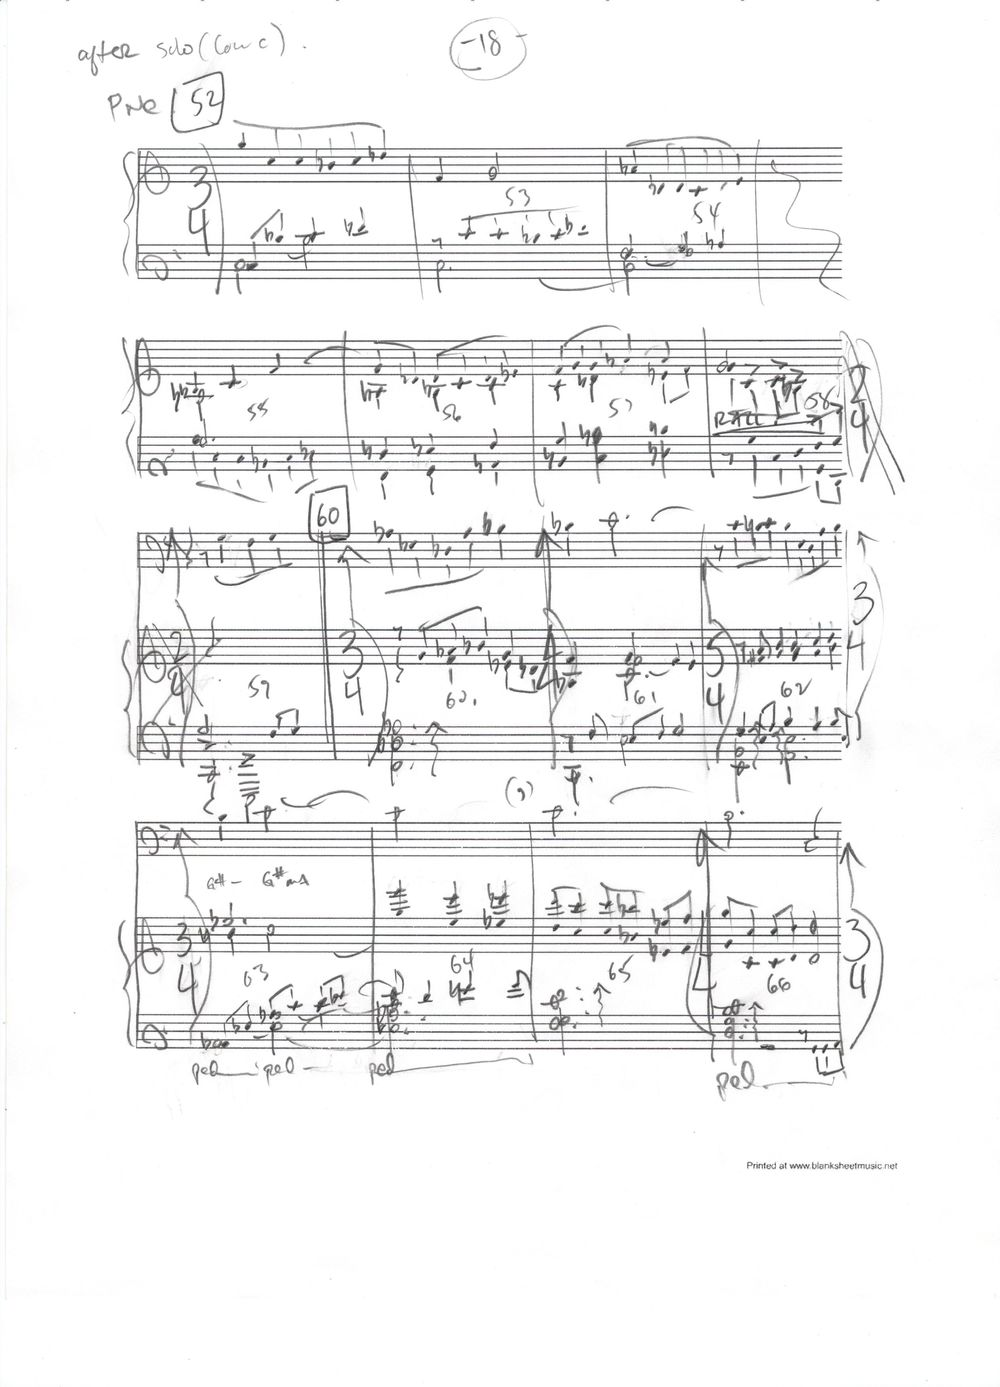 Concerto For Bass Trombone, sketch